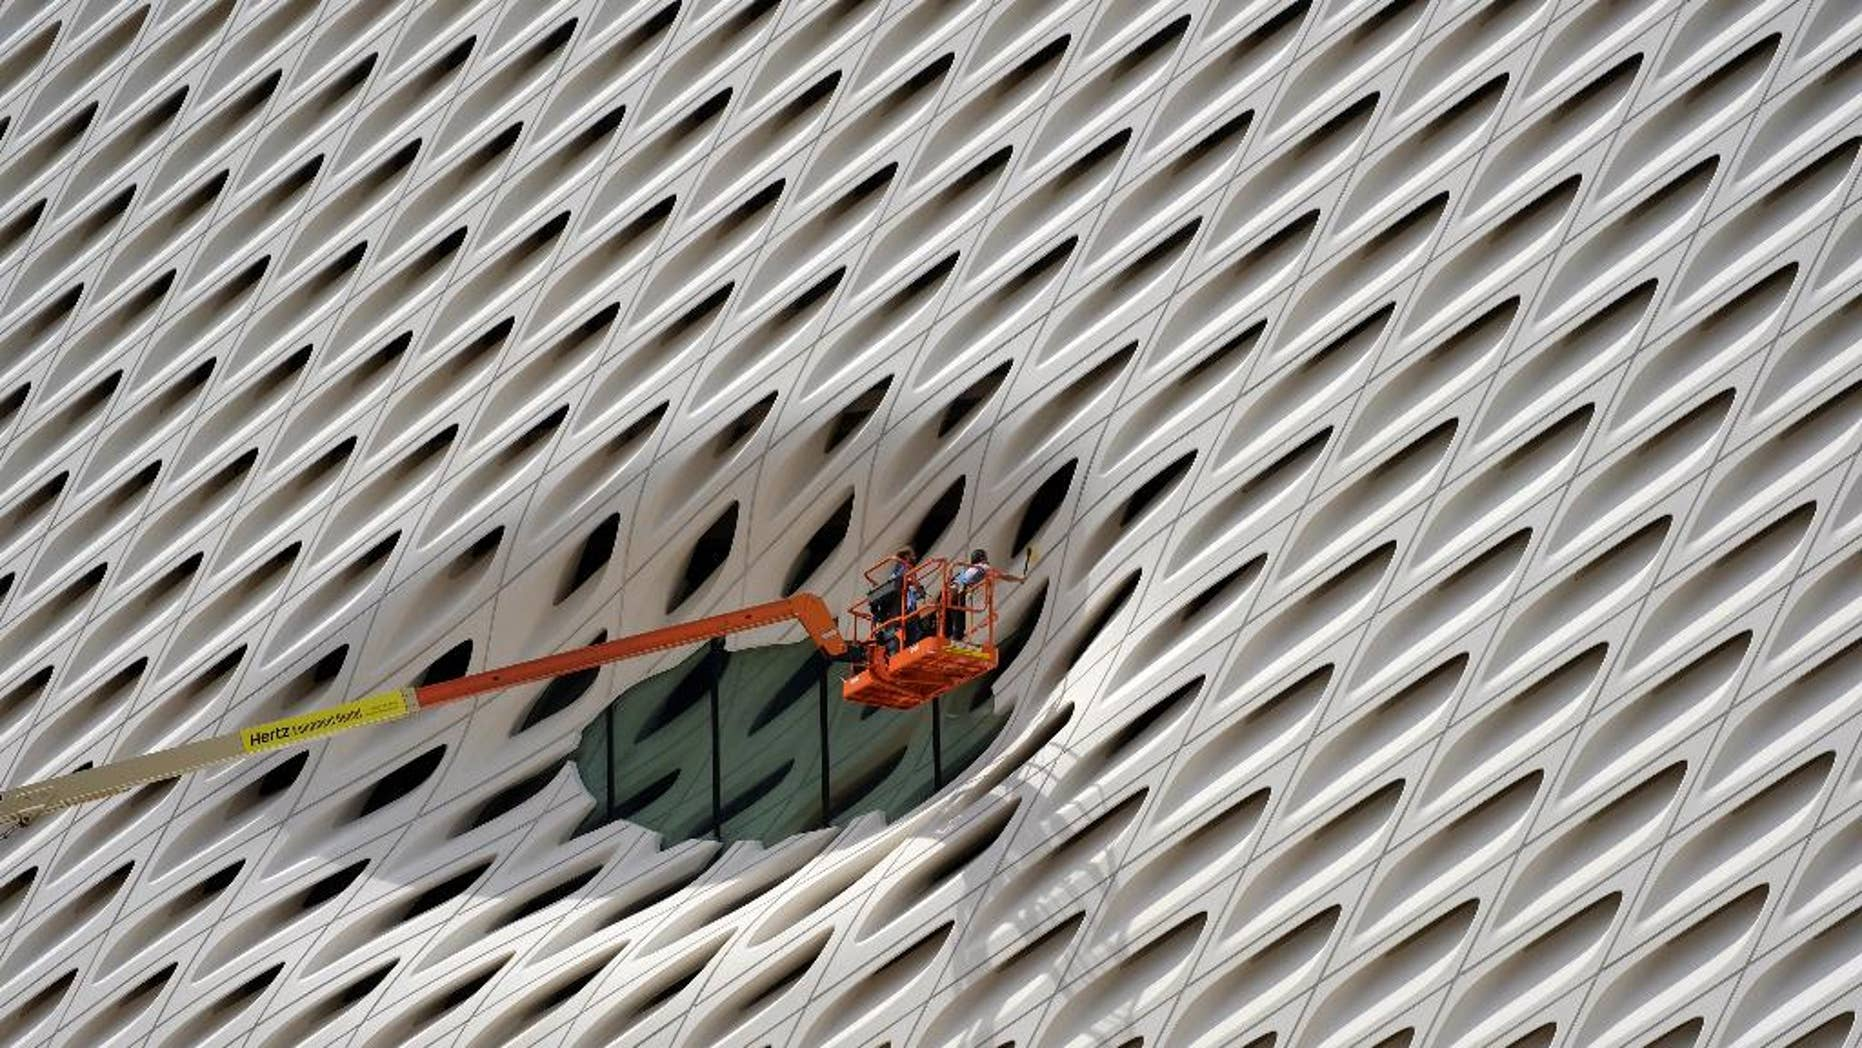 FILE - In this Sept. 1, 2015 file photo, workers clean the facade around a window of the new Broad Museum in downtown Los Angeles. The Conference Board releases its index of leading indicators for August on Friday, Sept. 18, 2015. (AP Photo/Richard Vogel, File)